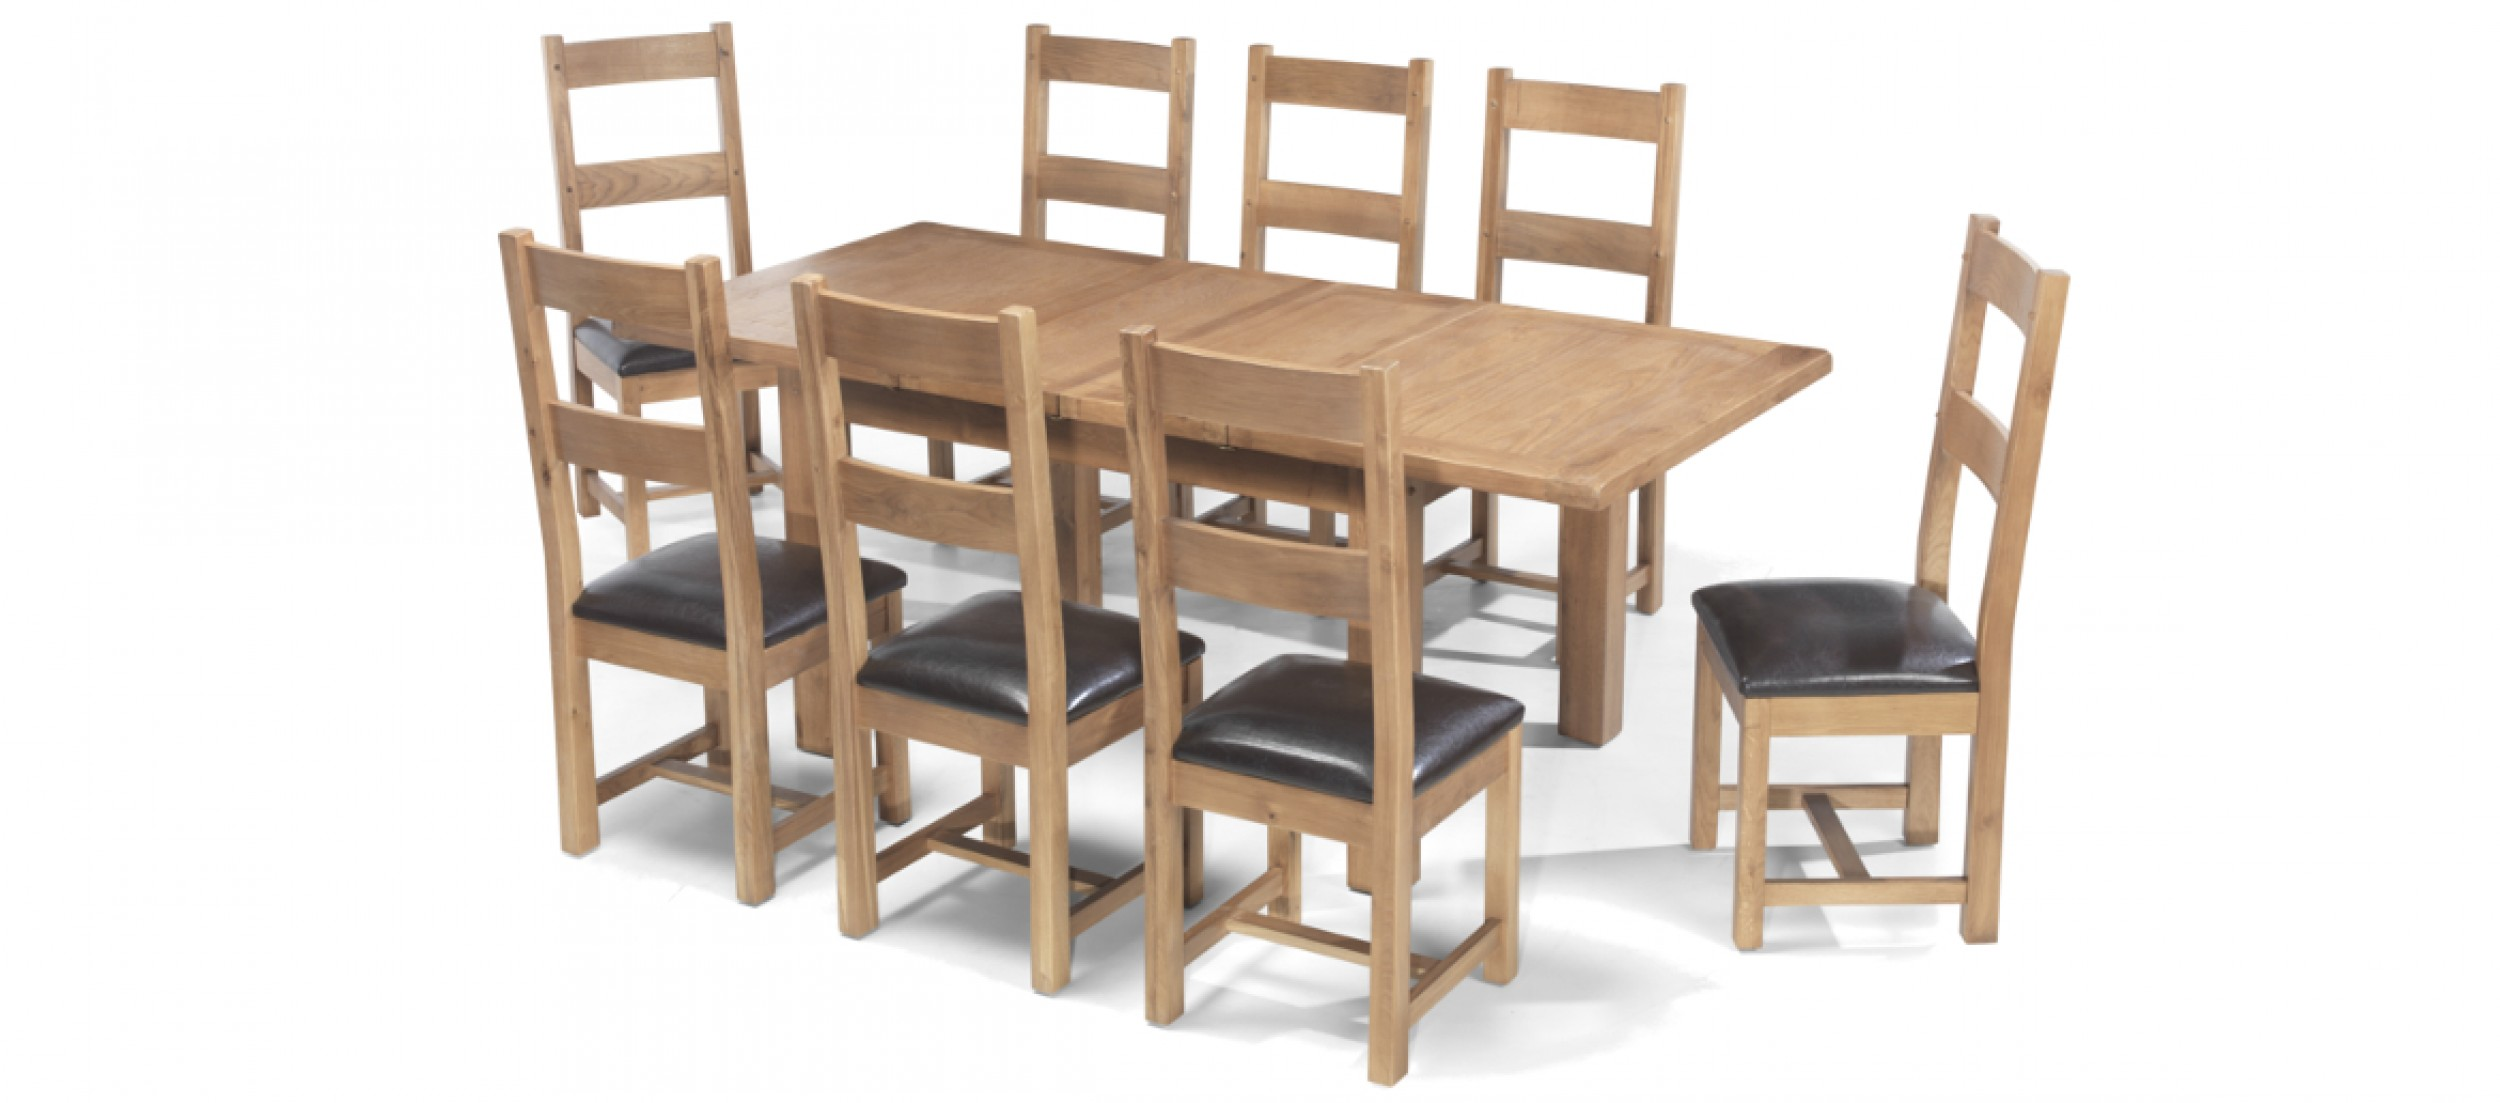 rustic dining chairs uk avengers table and oak 132 198 cm extending 8